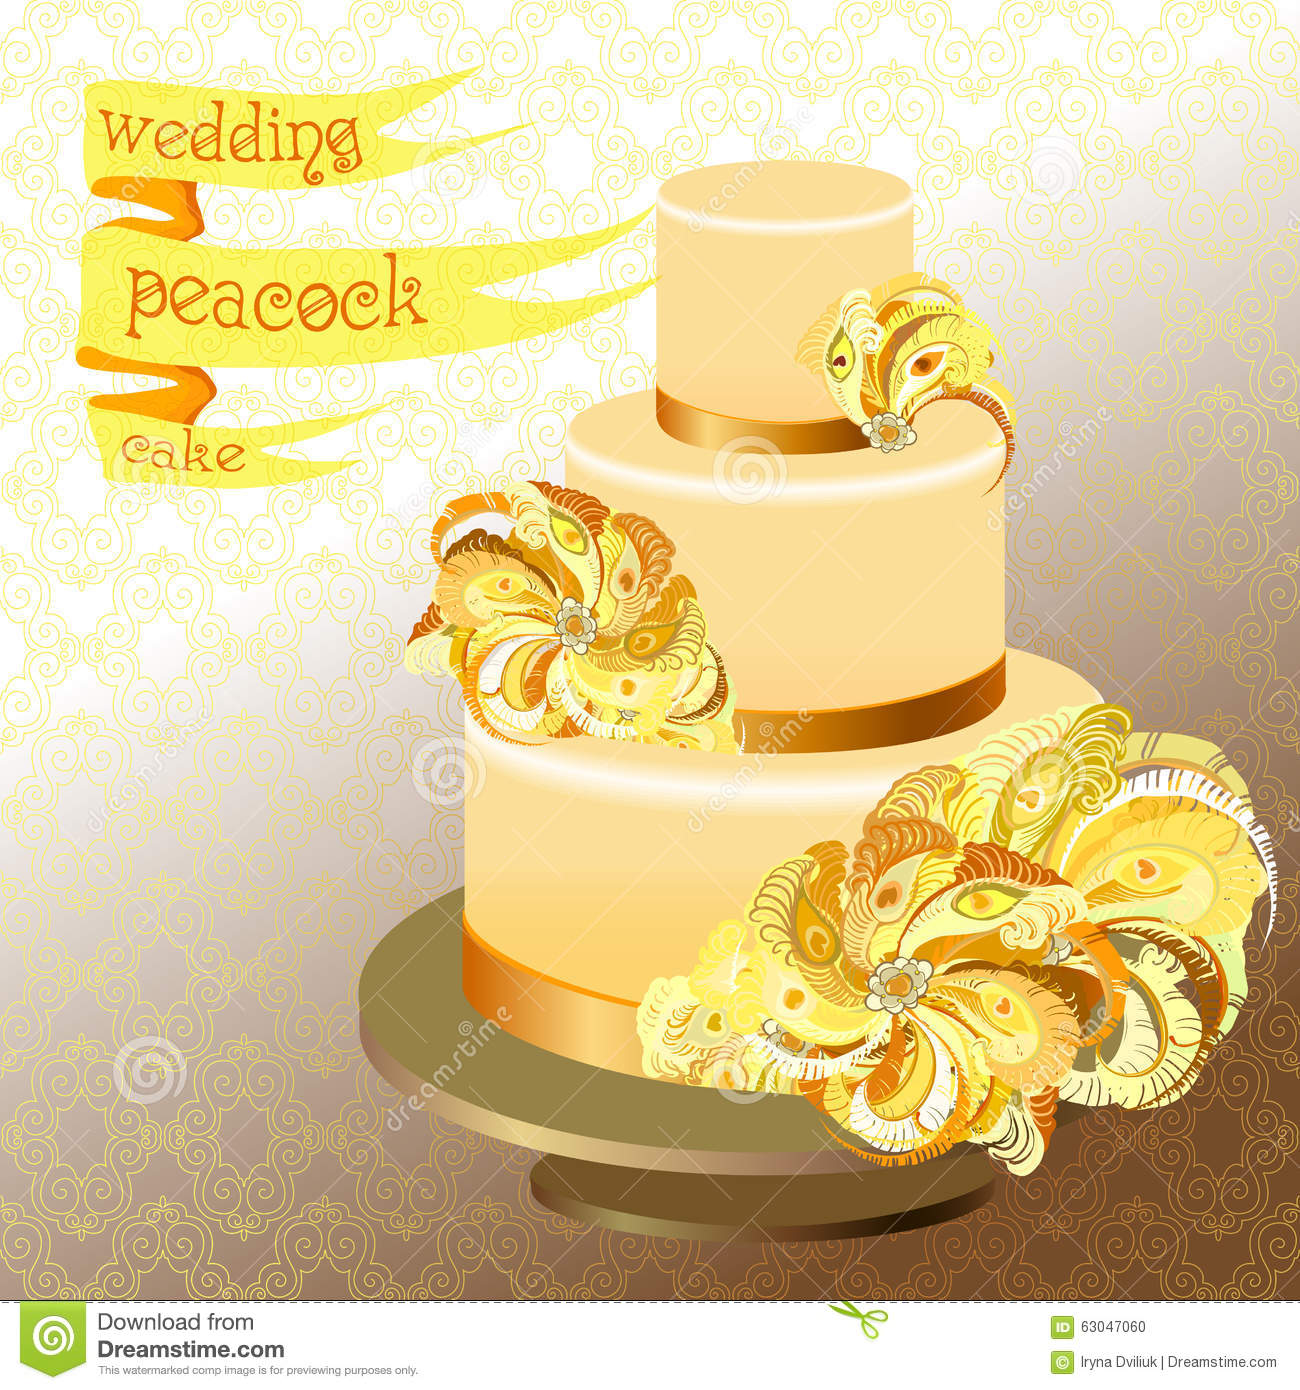 Peacock Feather Wedding Cake: Wedding Cake With Peacock Feathers. Golden Yellow Design